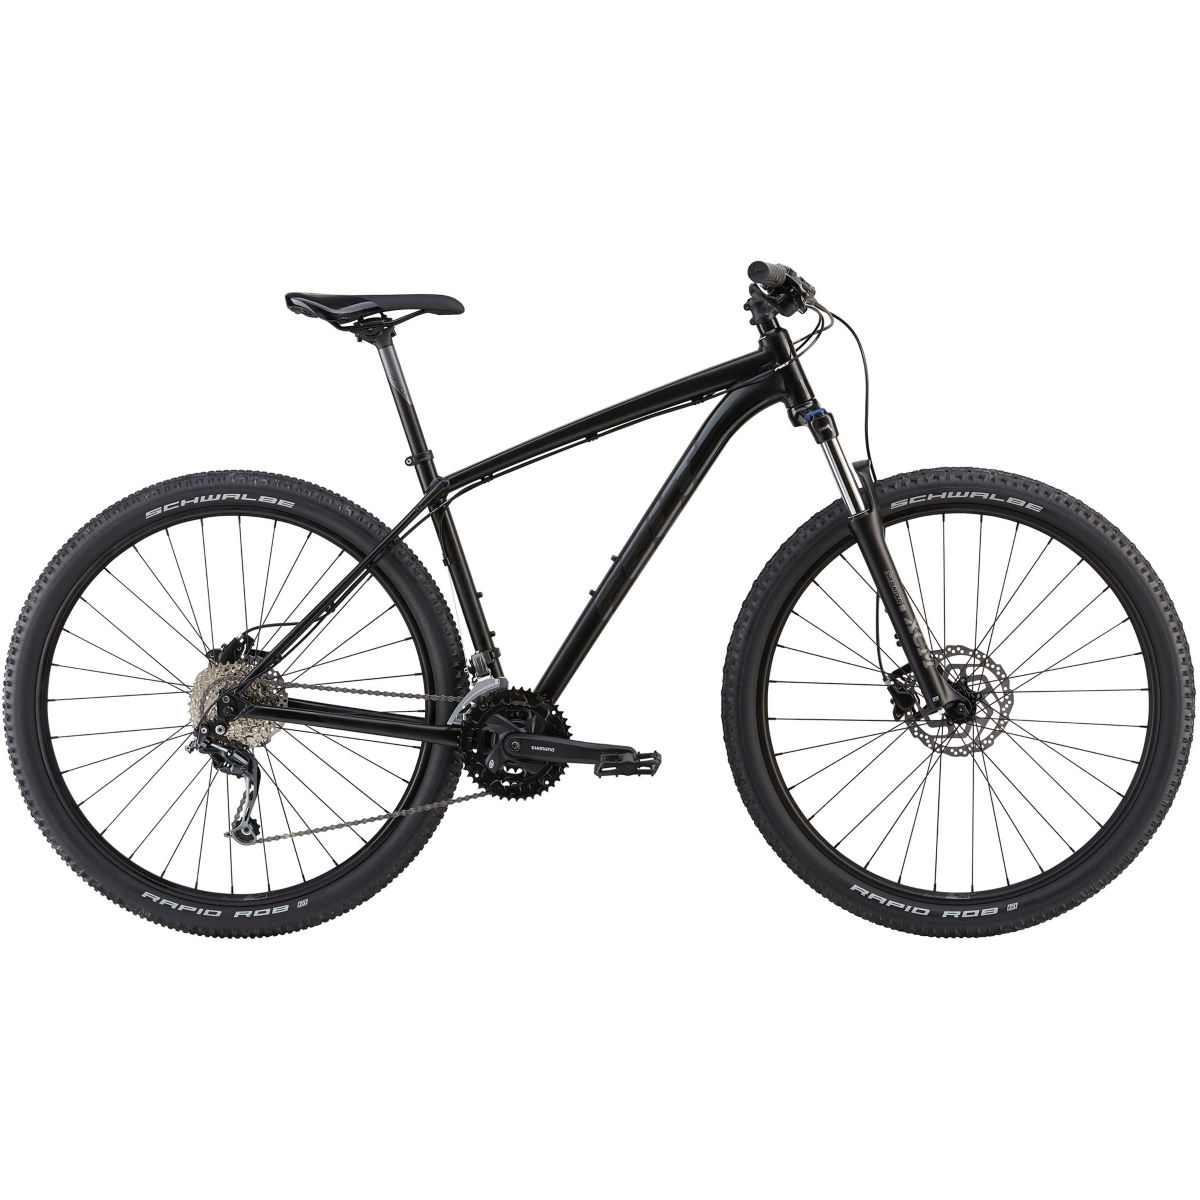 VTT semi-rigide Felt Dispatch 9/60 XC (2018) - 14'' Stock Bike